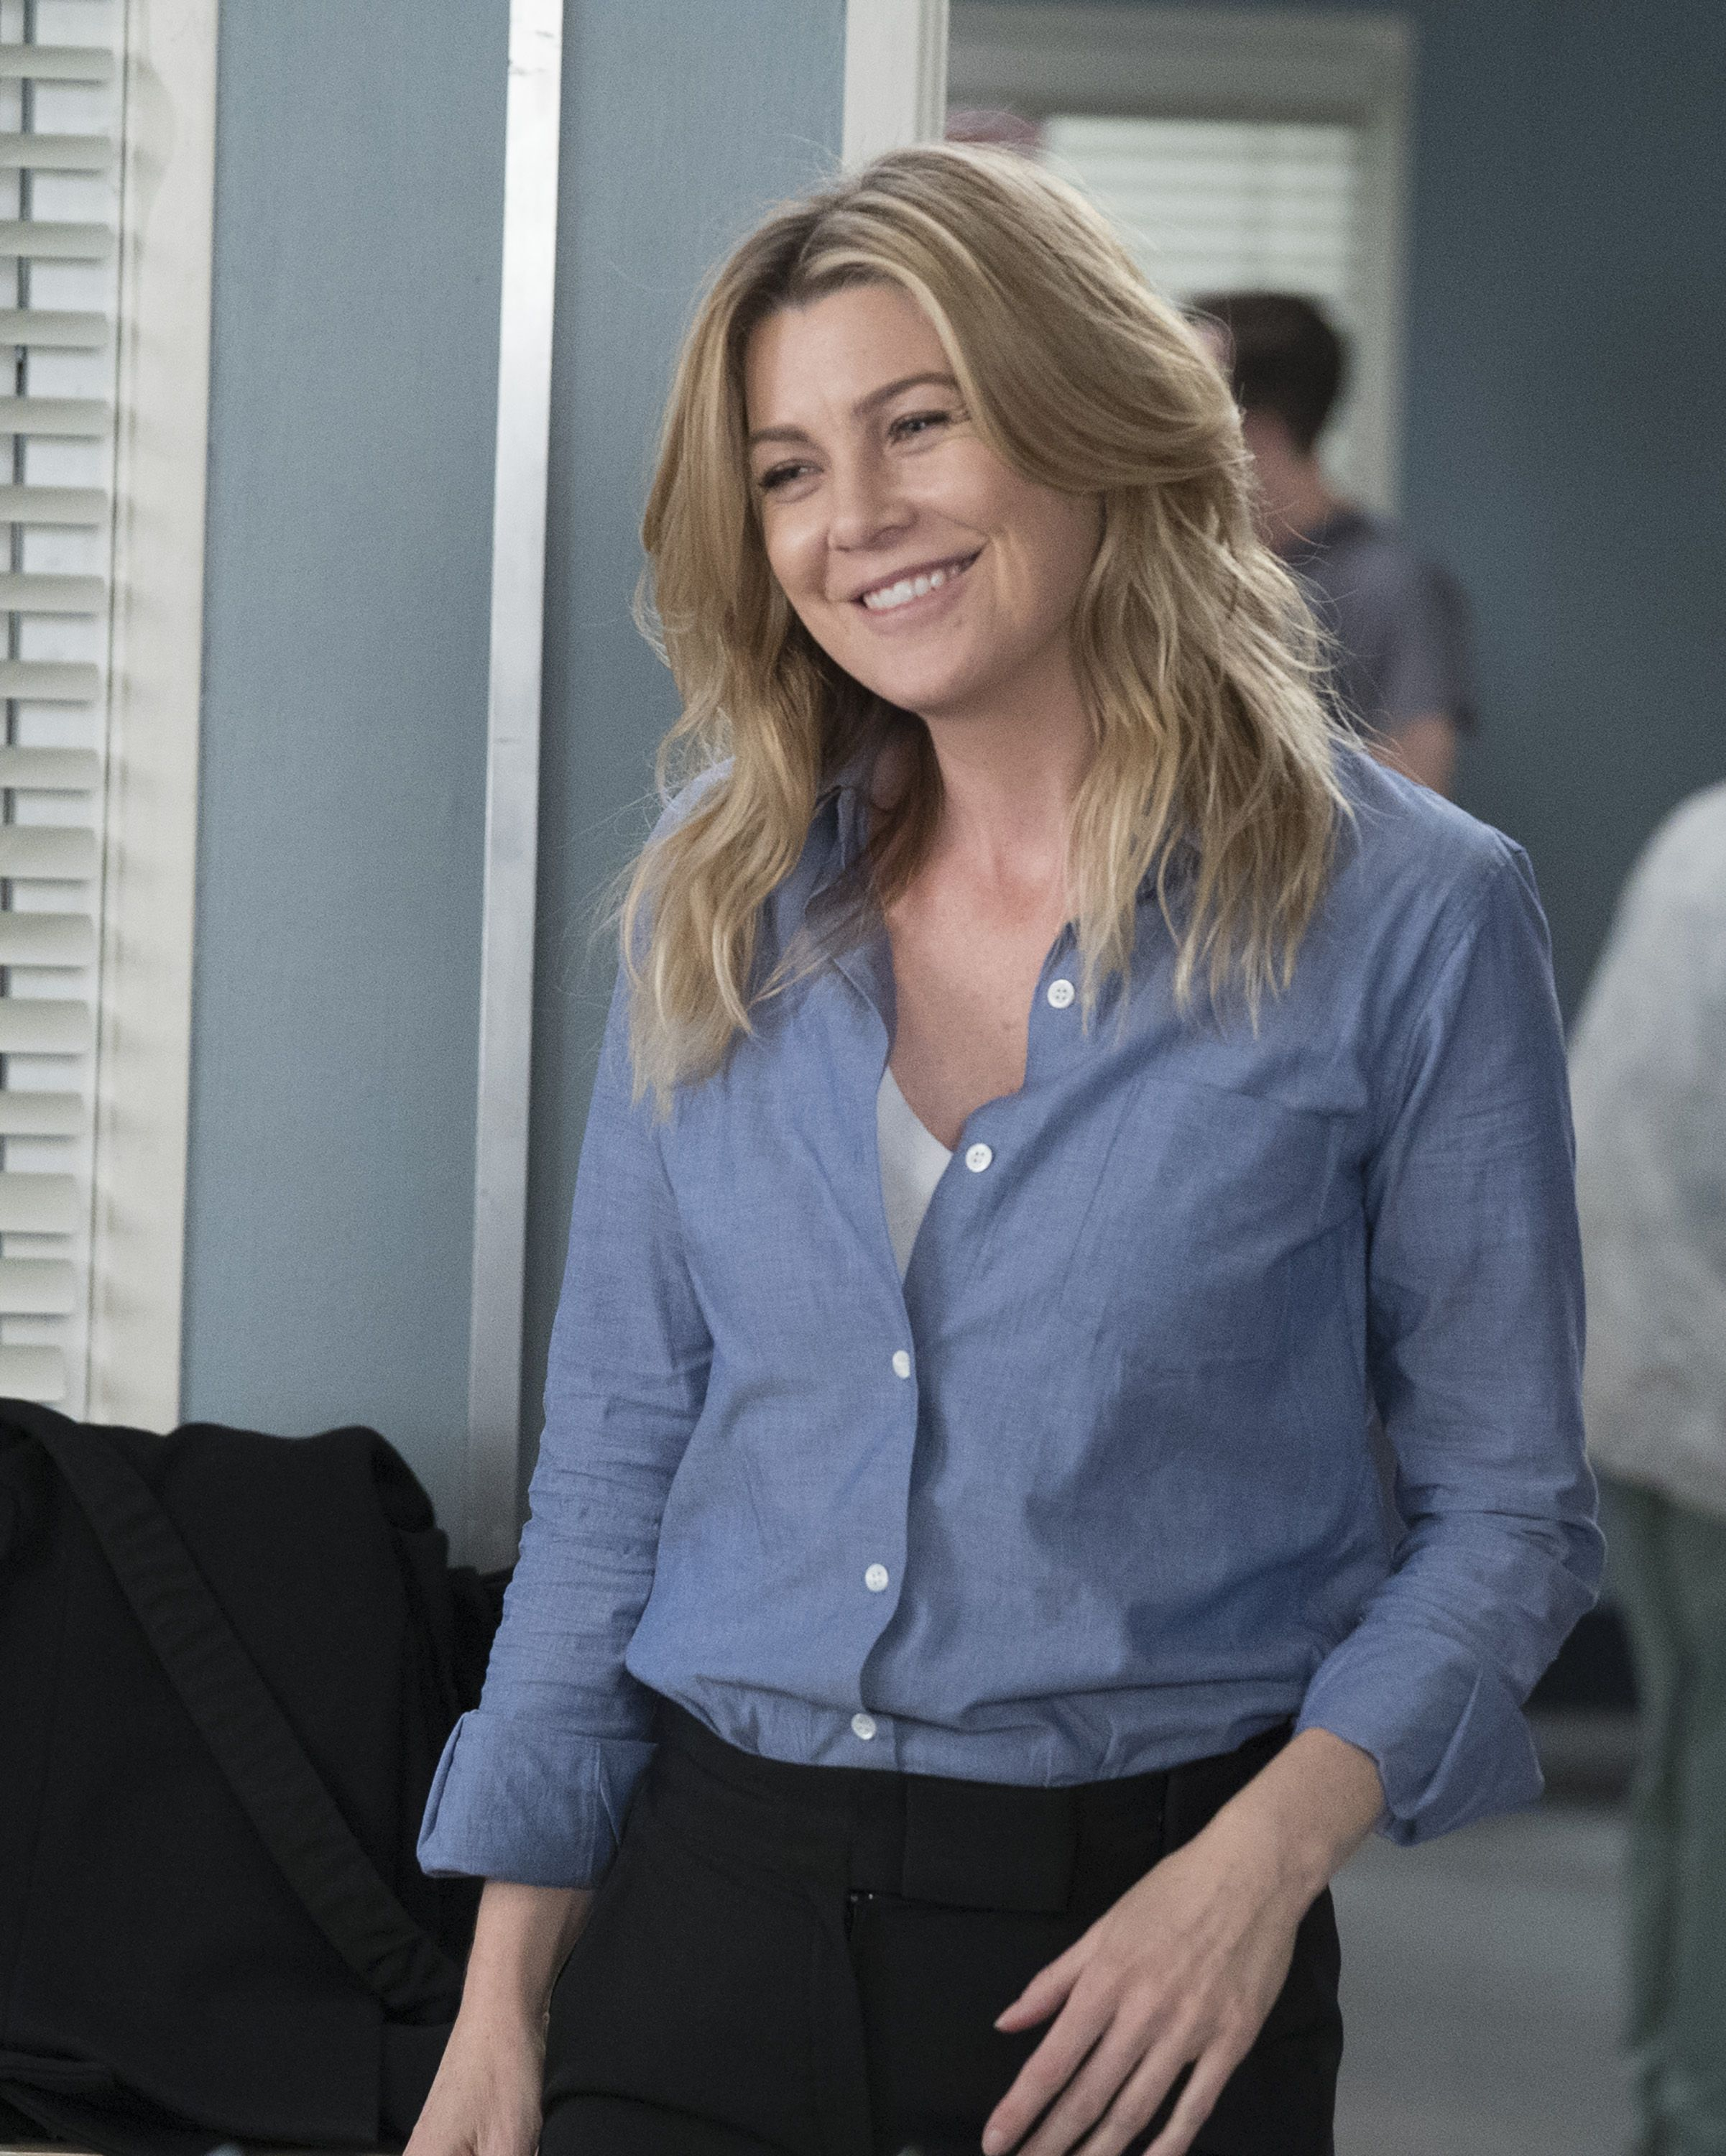 bc8da901239 Grey's Anatomy star Ellen Pompeo offers biggest hint yet that the show will  end soon